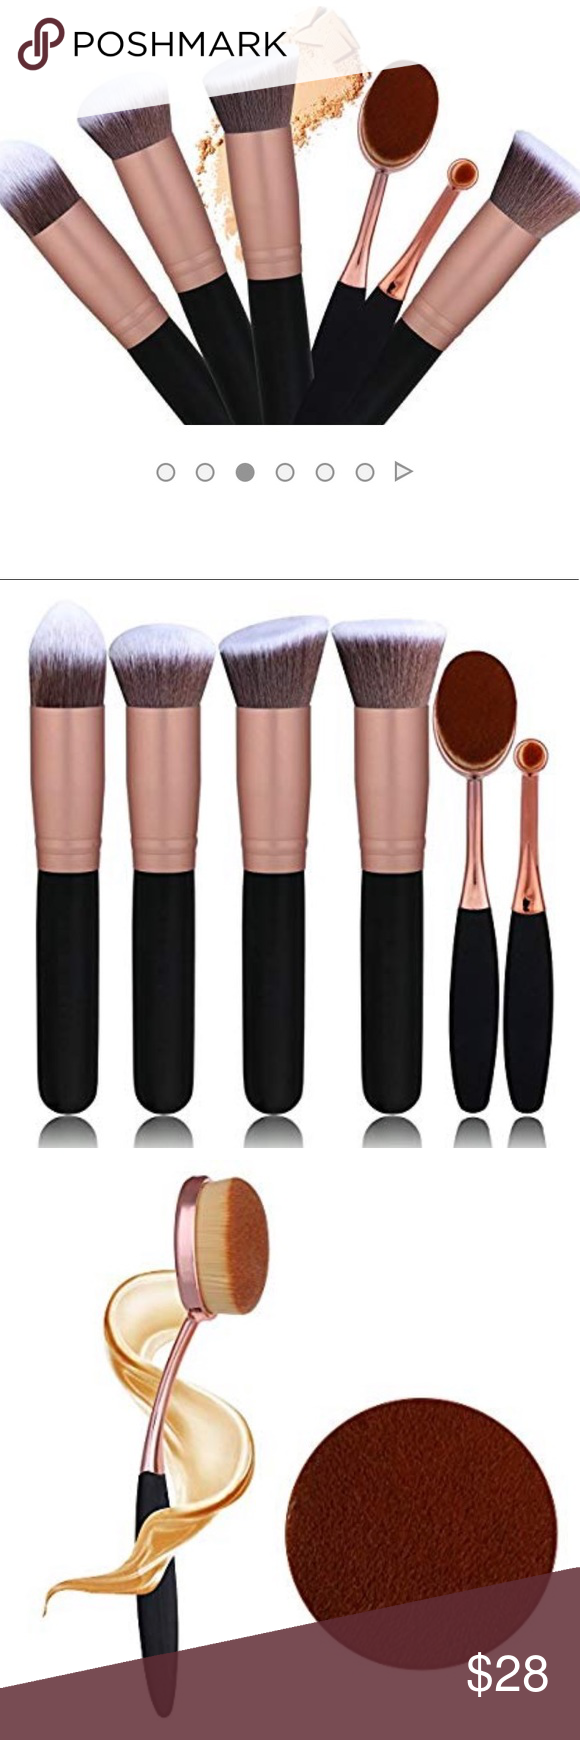 Brand new makeup brushes NWT Oval makeup brush set